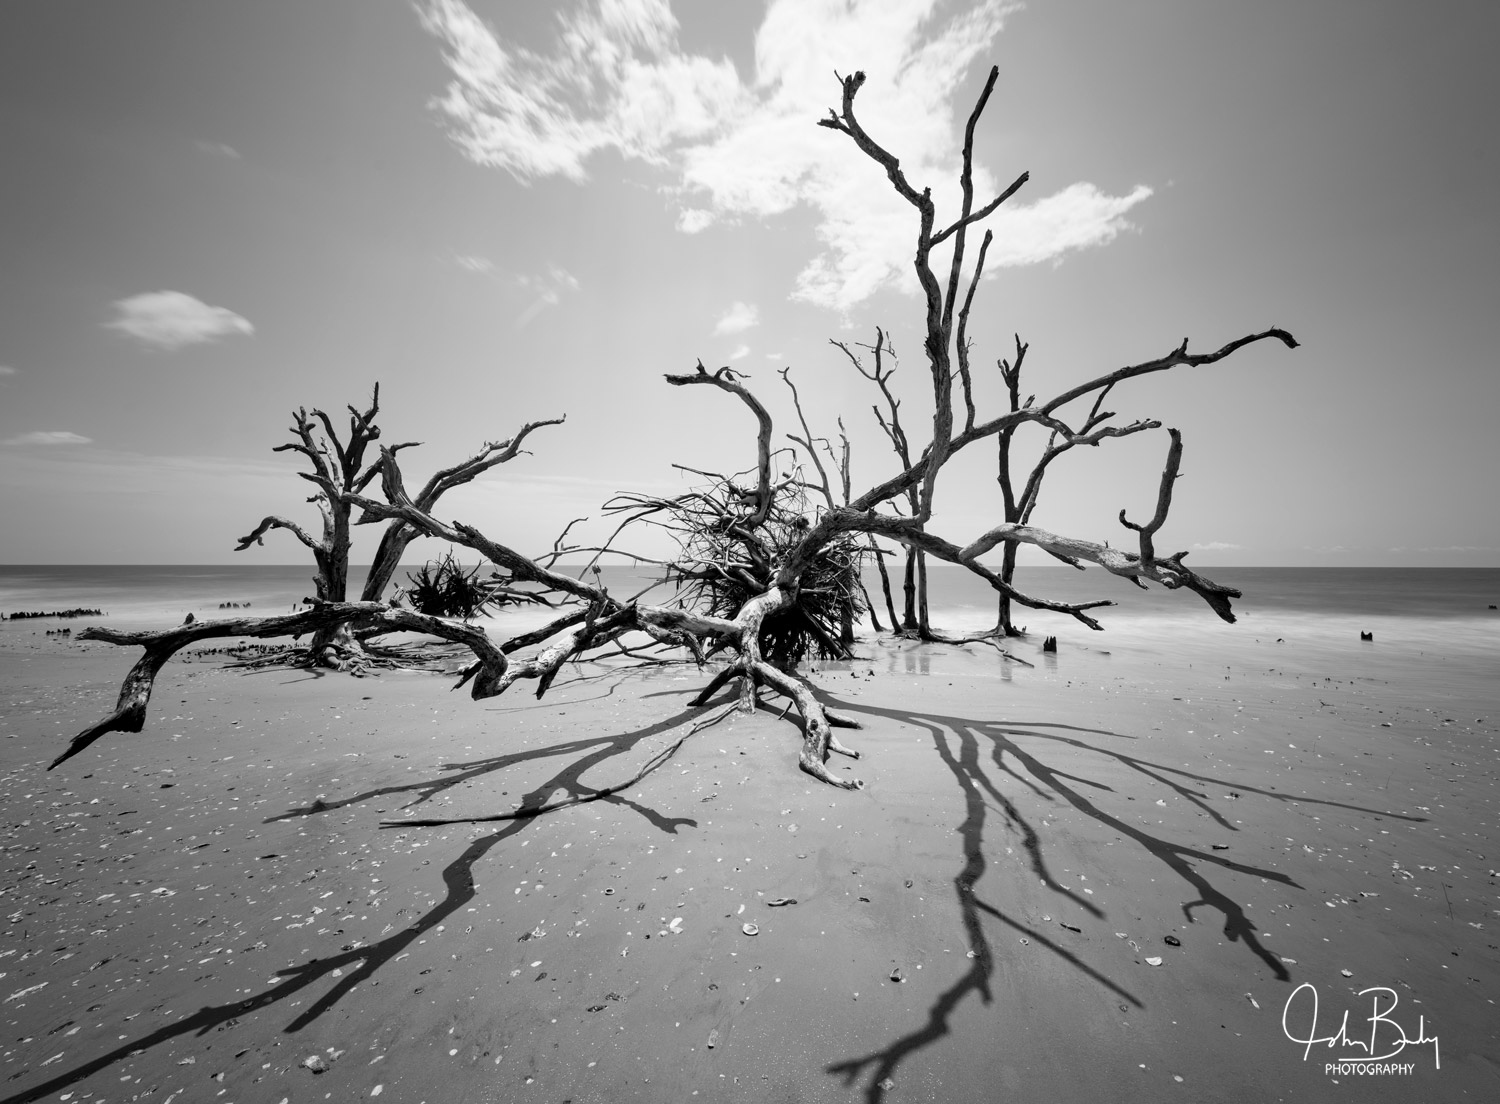 South Carolina, deist island, botany bay, oak trees standing in the ocean, abstract, photography